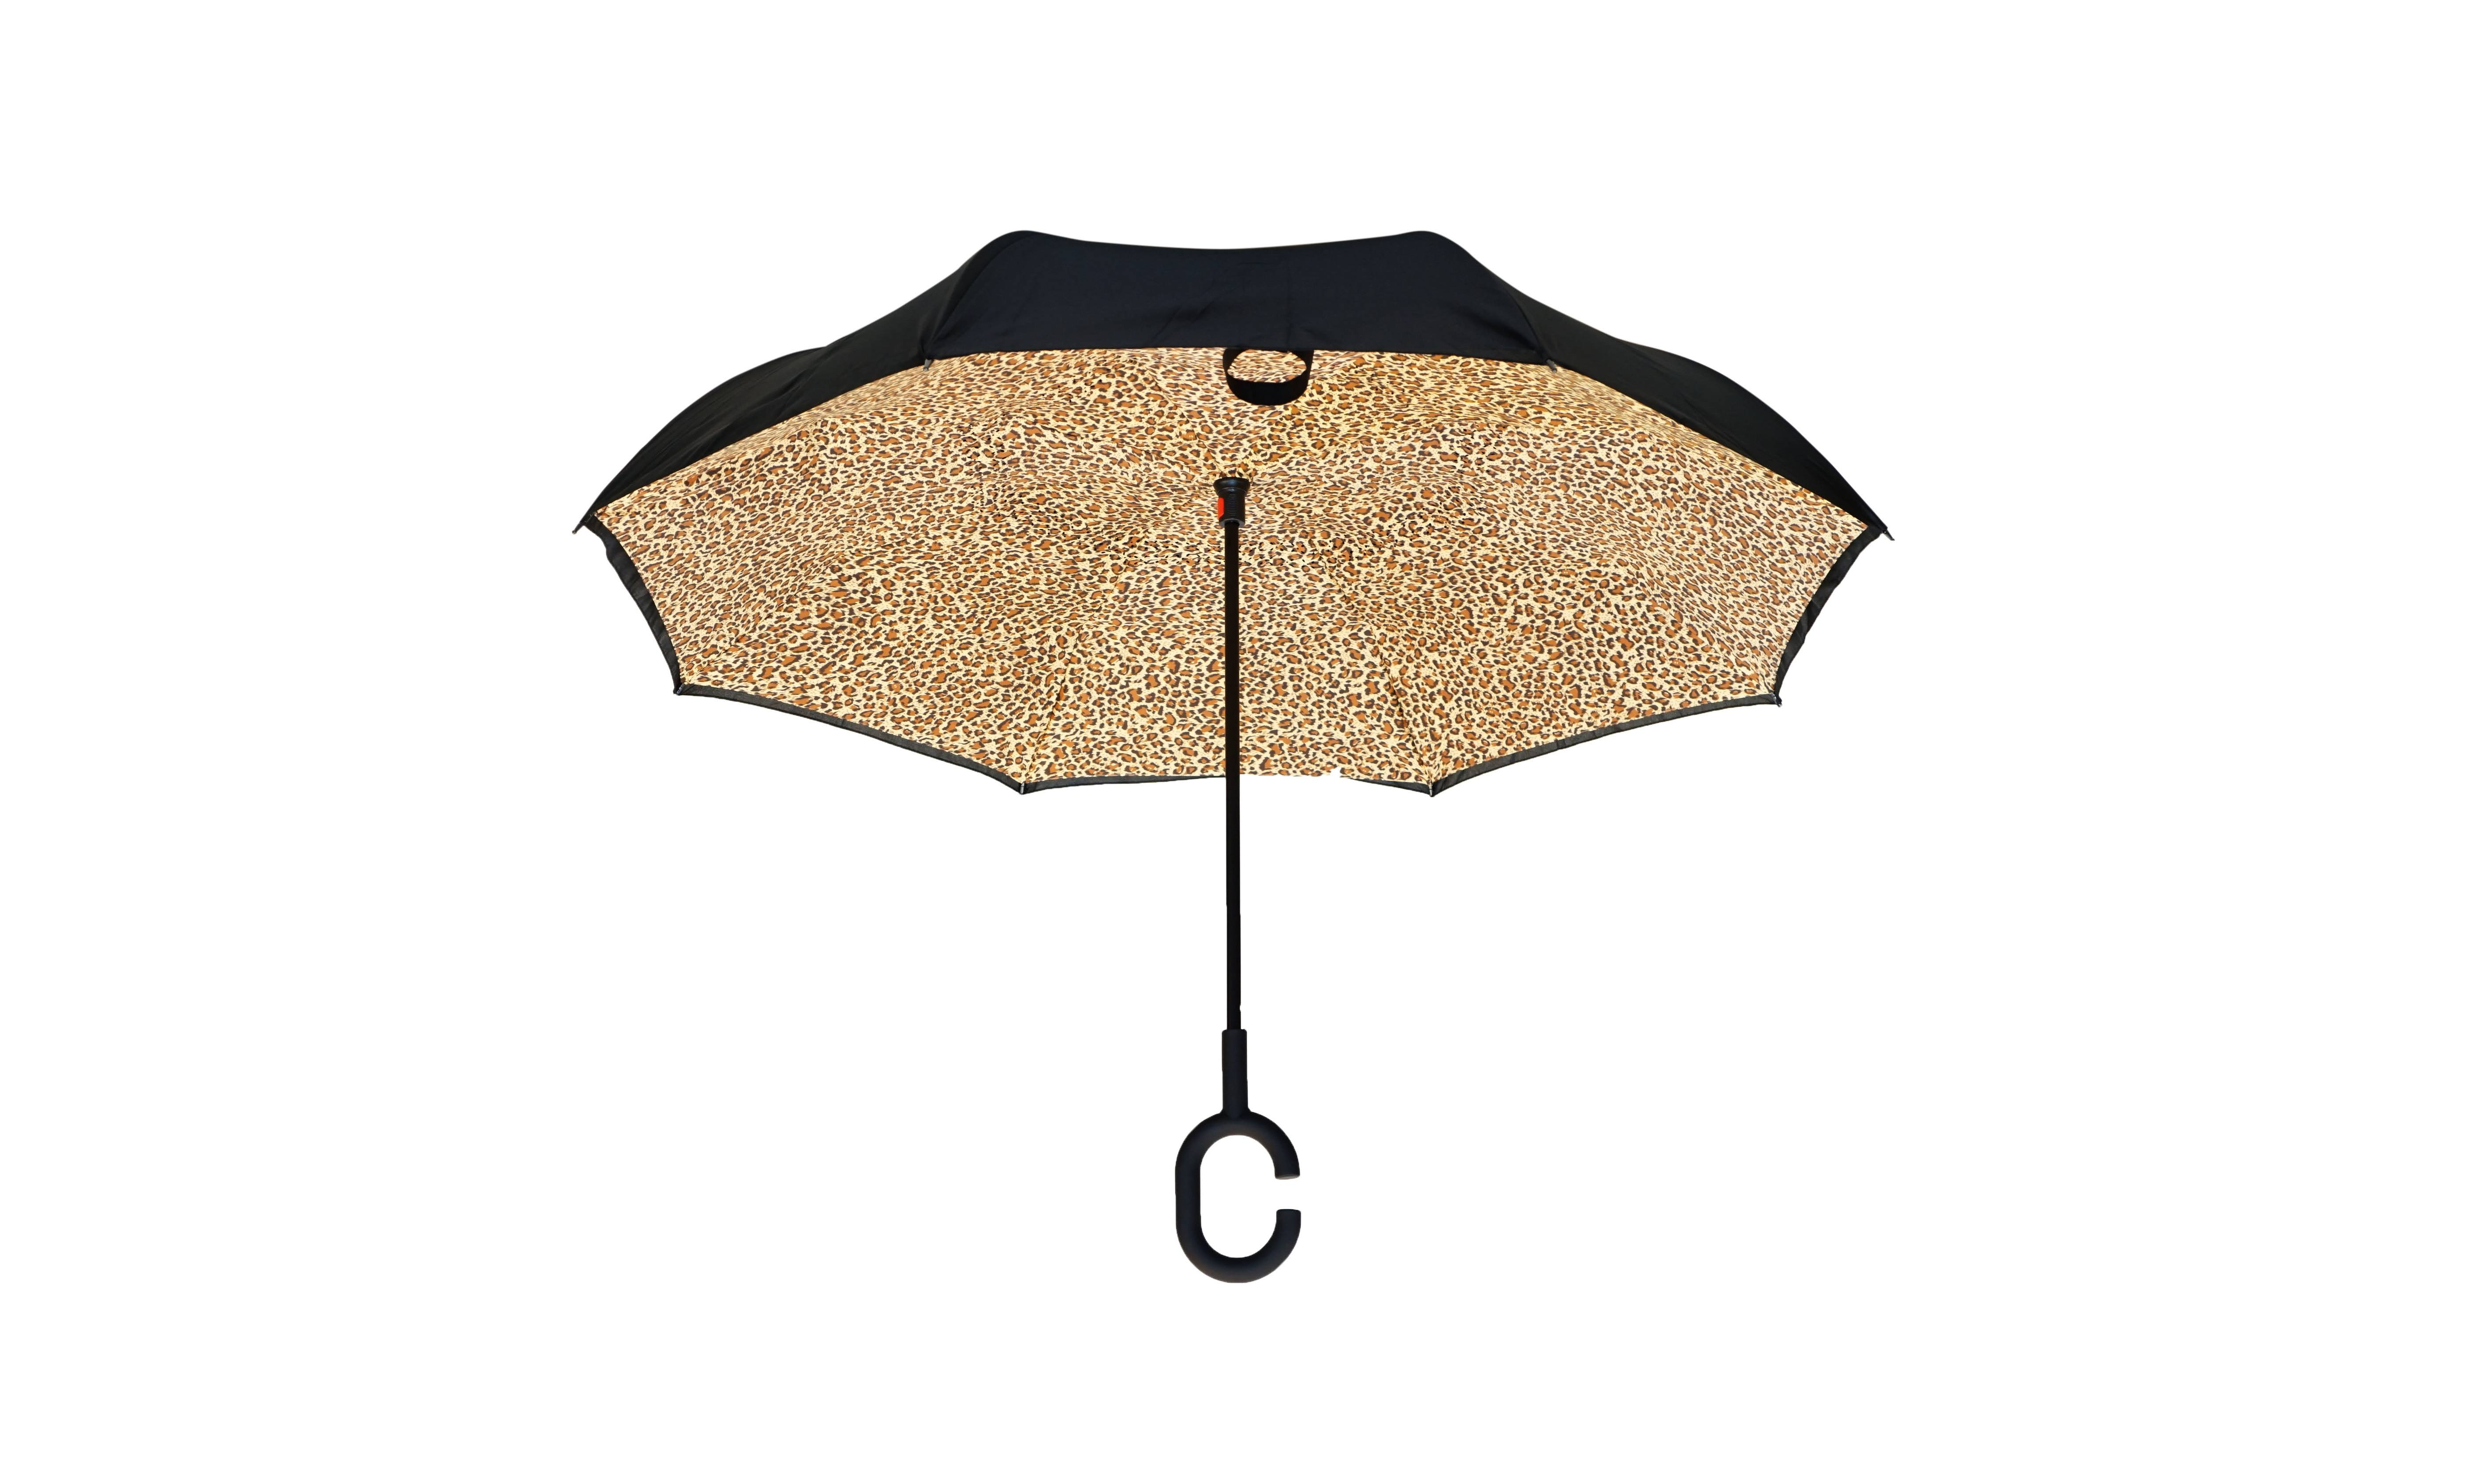 Topsy Turvy Leopard Print Inverted Opening Umbrella